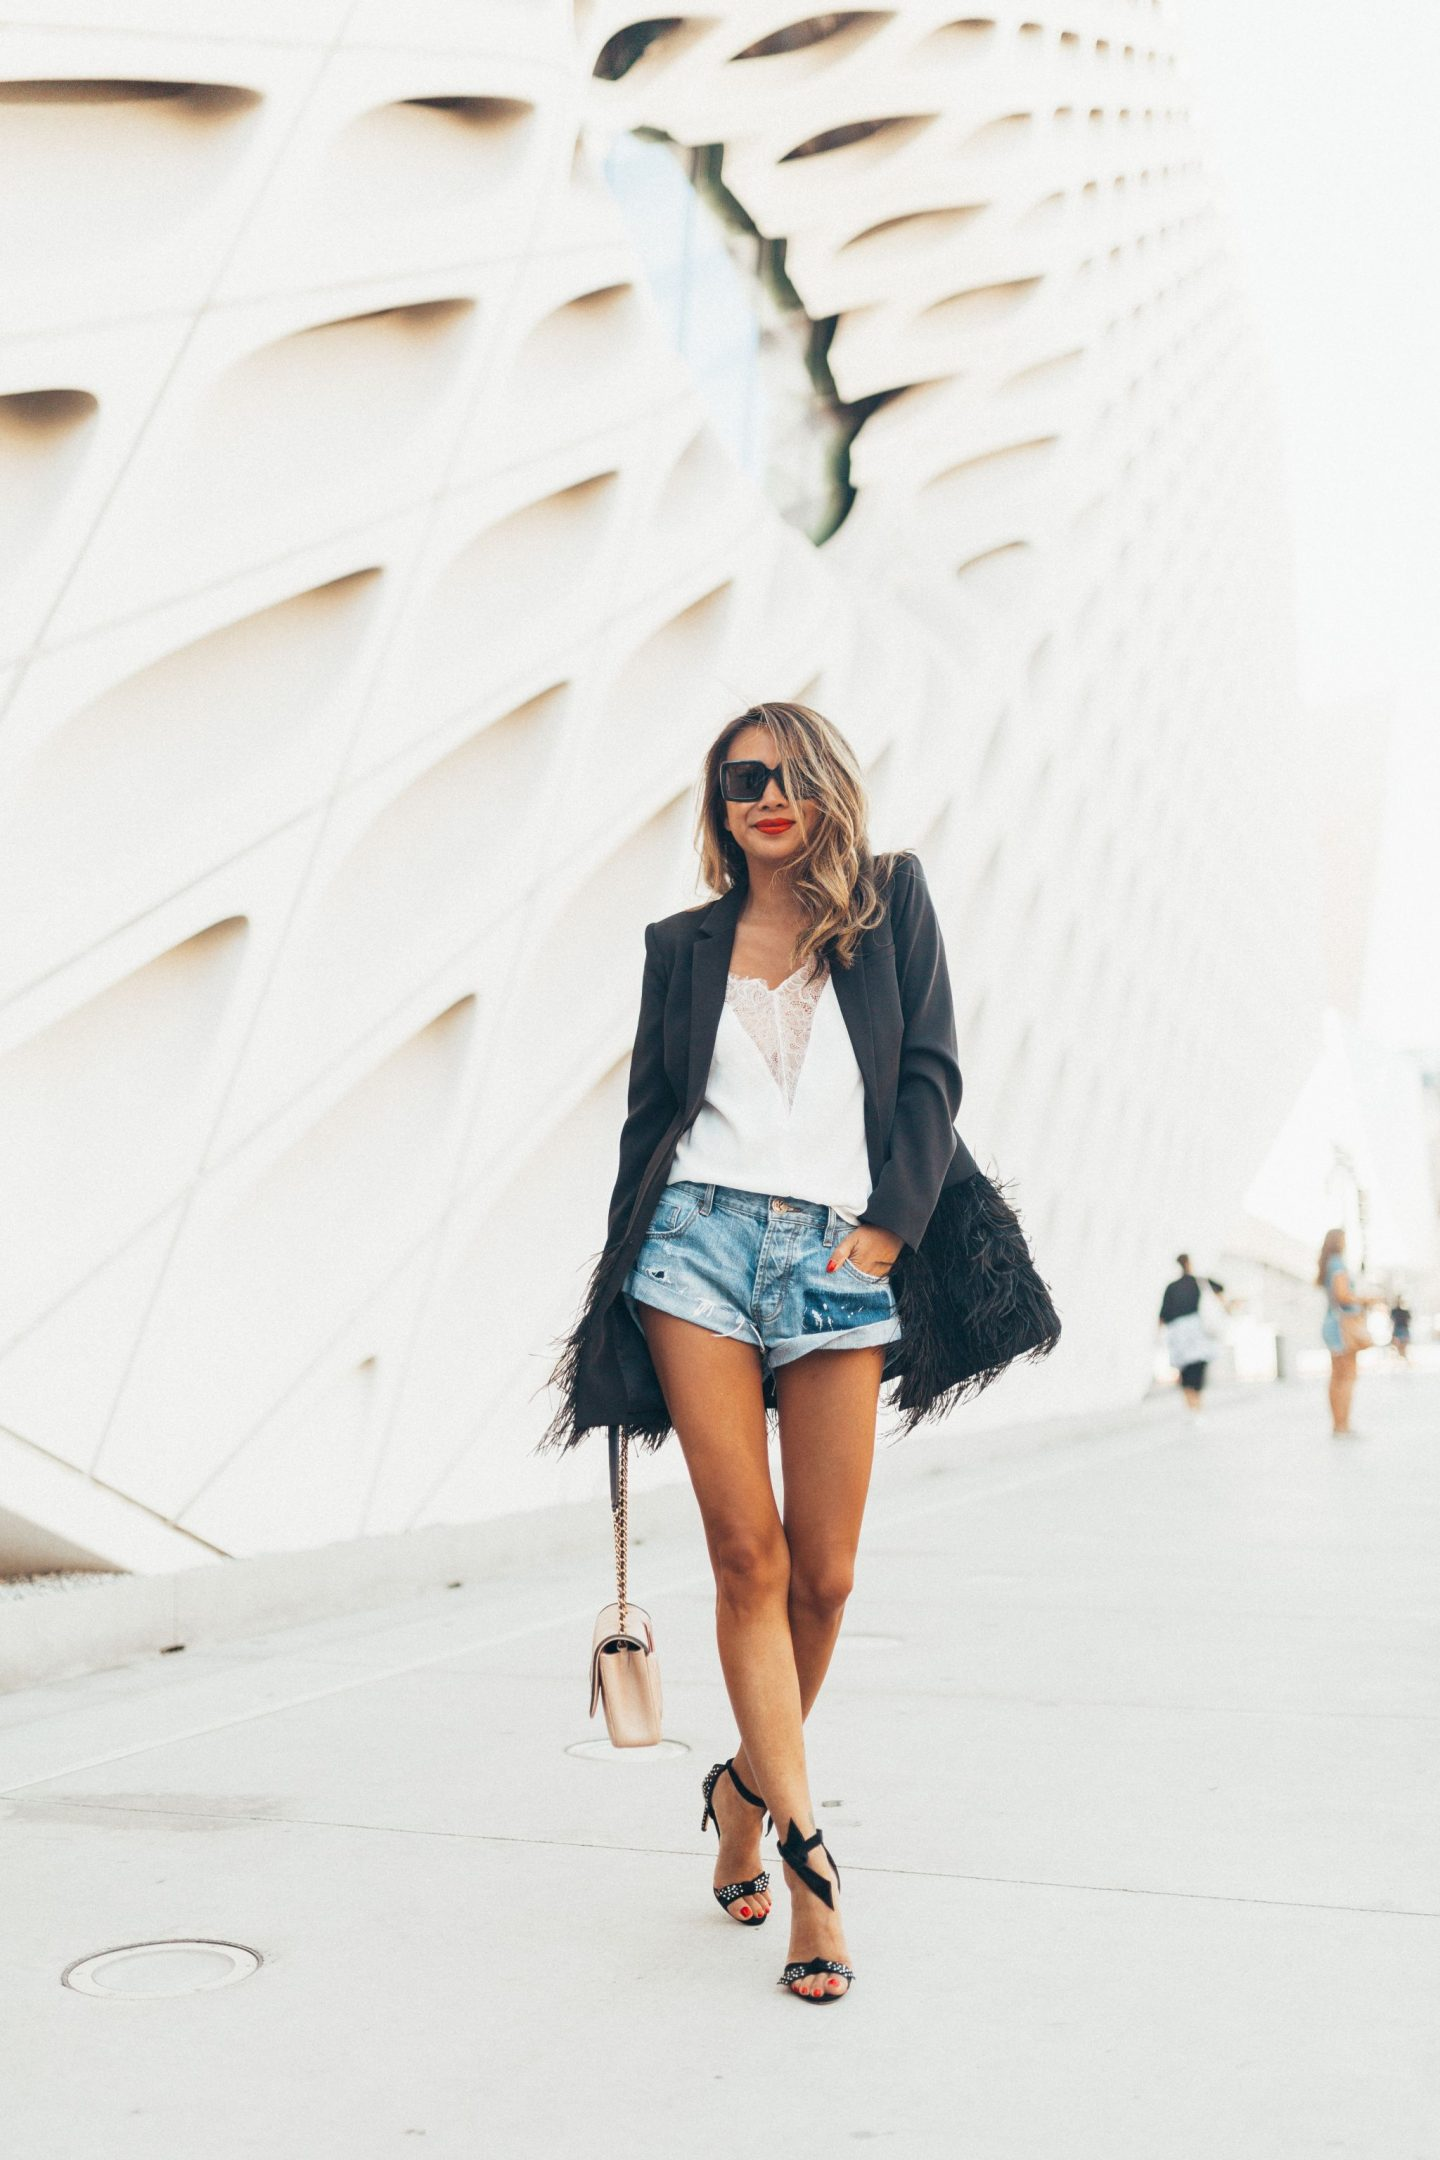 Chicago Travel Blogger, Chicago Best Fashion Blogger, Jennifer Worman, Los Angeles, LA girls trip, Kimpton Everly Hotel, Hollywood, going out style, summer style, denim shorts, blazer